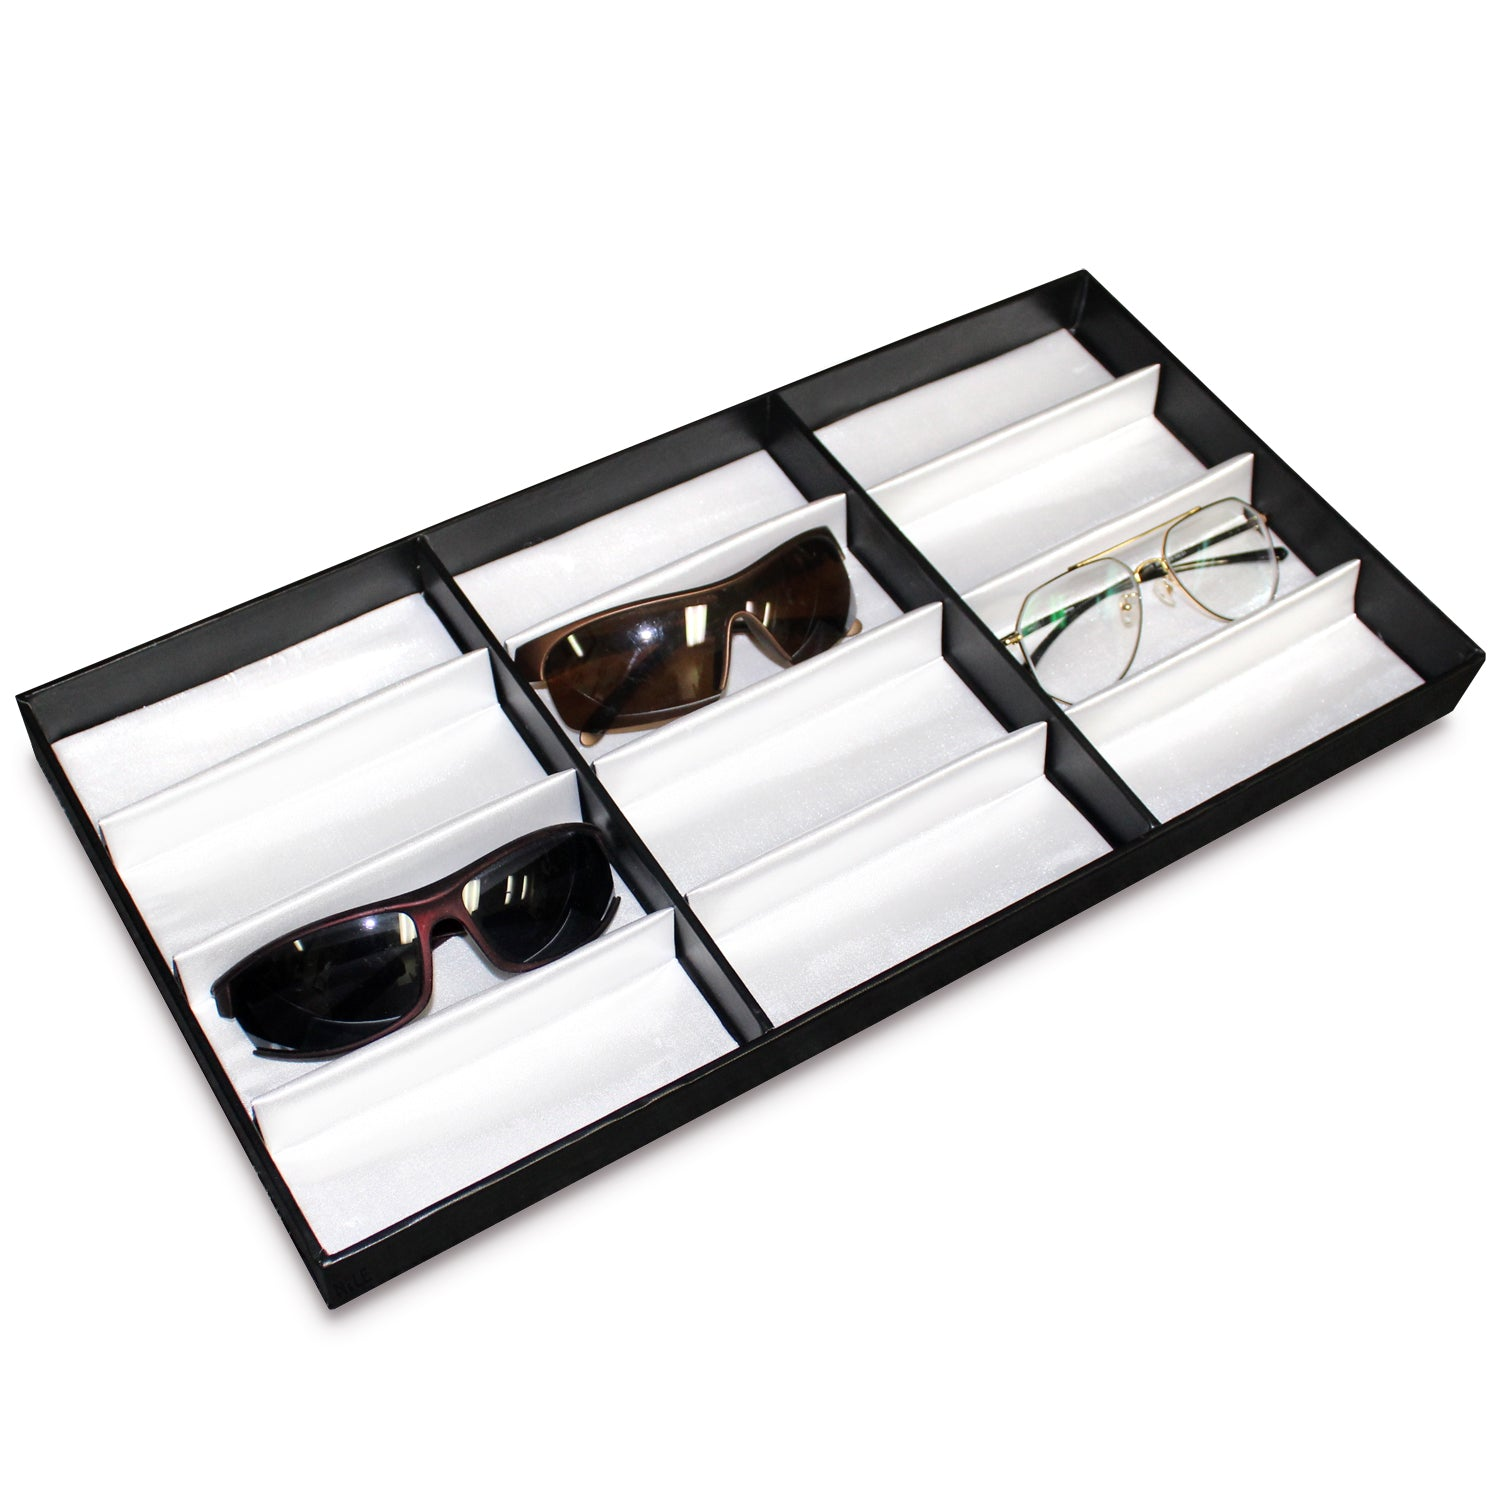 "#TR-34BP (BK) Leatherette Wooden Eyewear  Tray 19"" x 9 3/4""x 1 1/4""H. For Up To 12 Frames. 